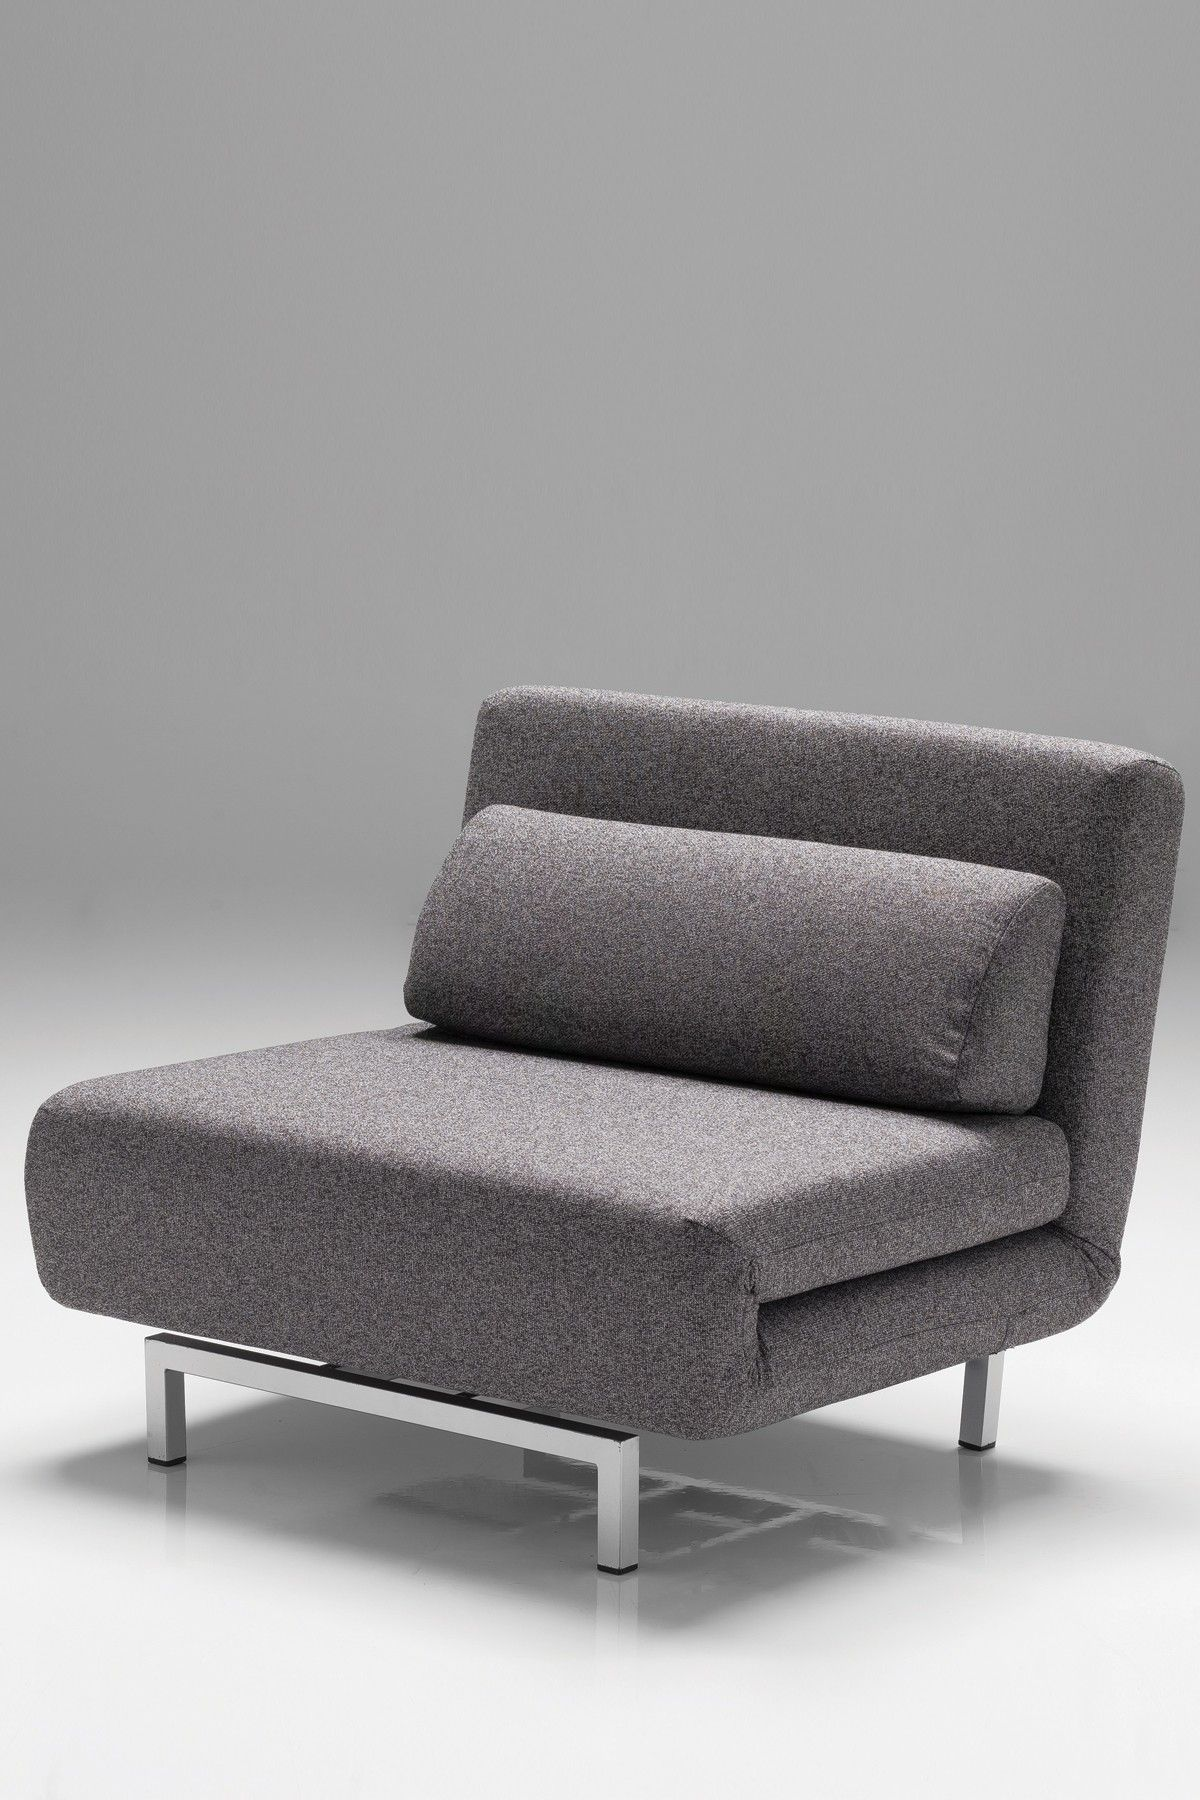 Mobital Iso Convertible Chair/Bed - Charcoal Tweed | Home ...